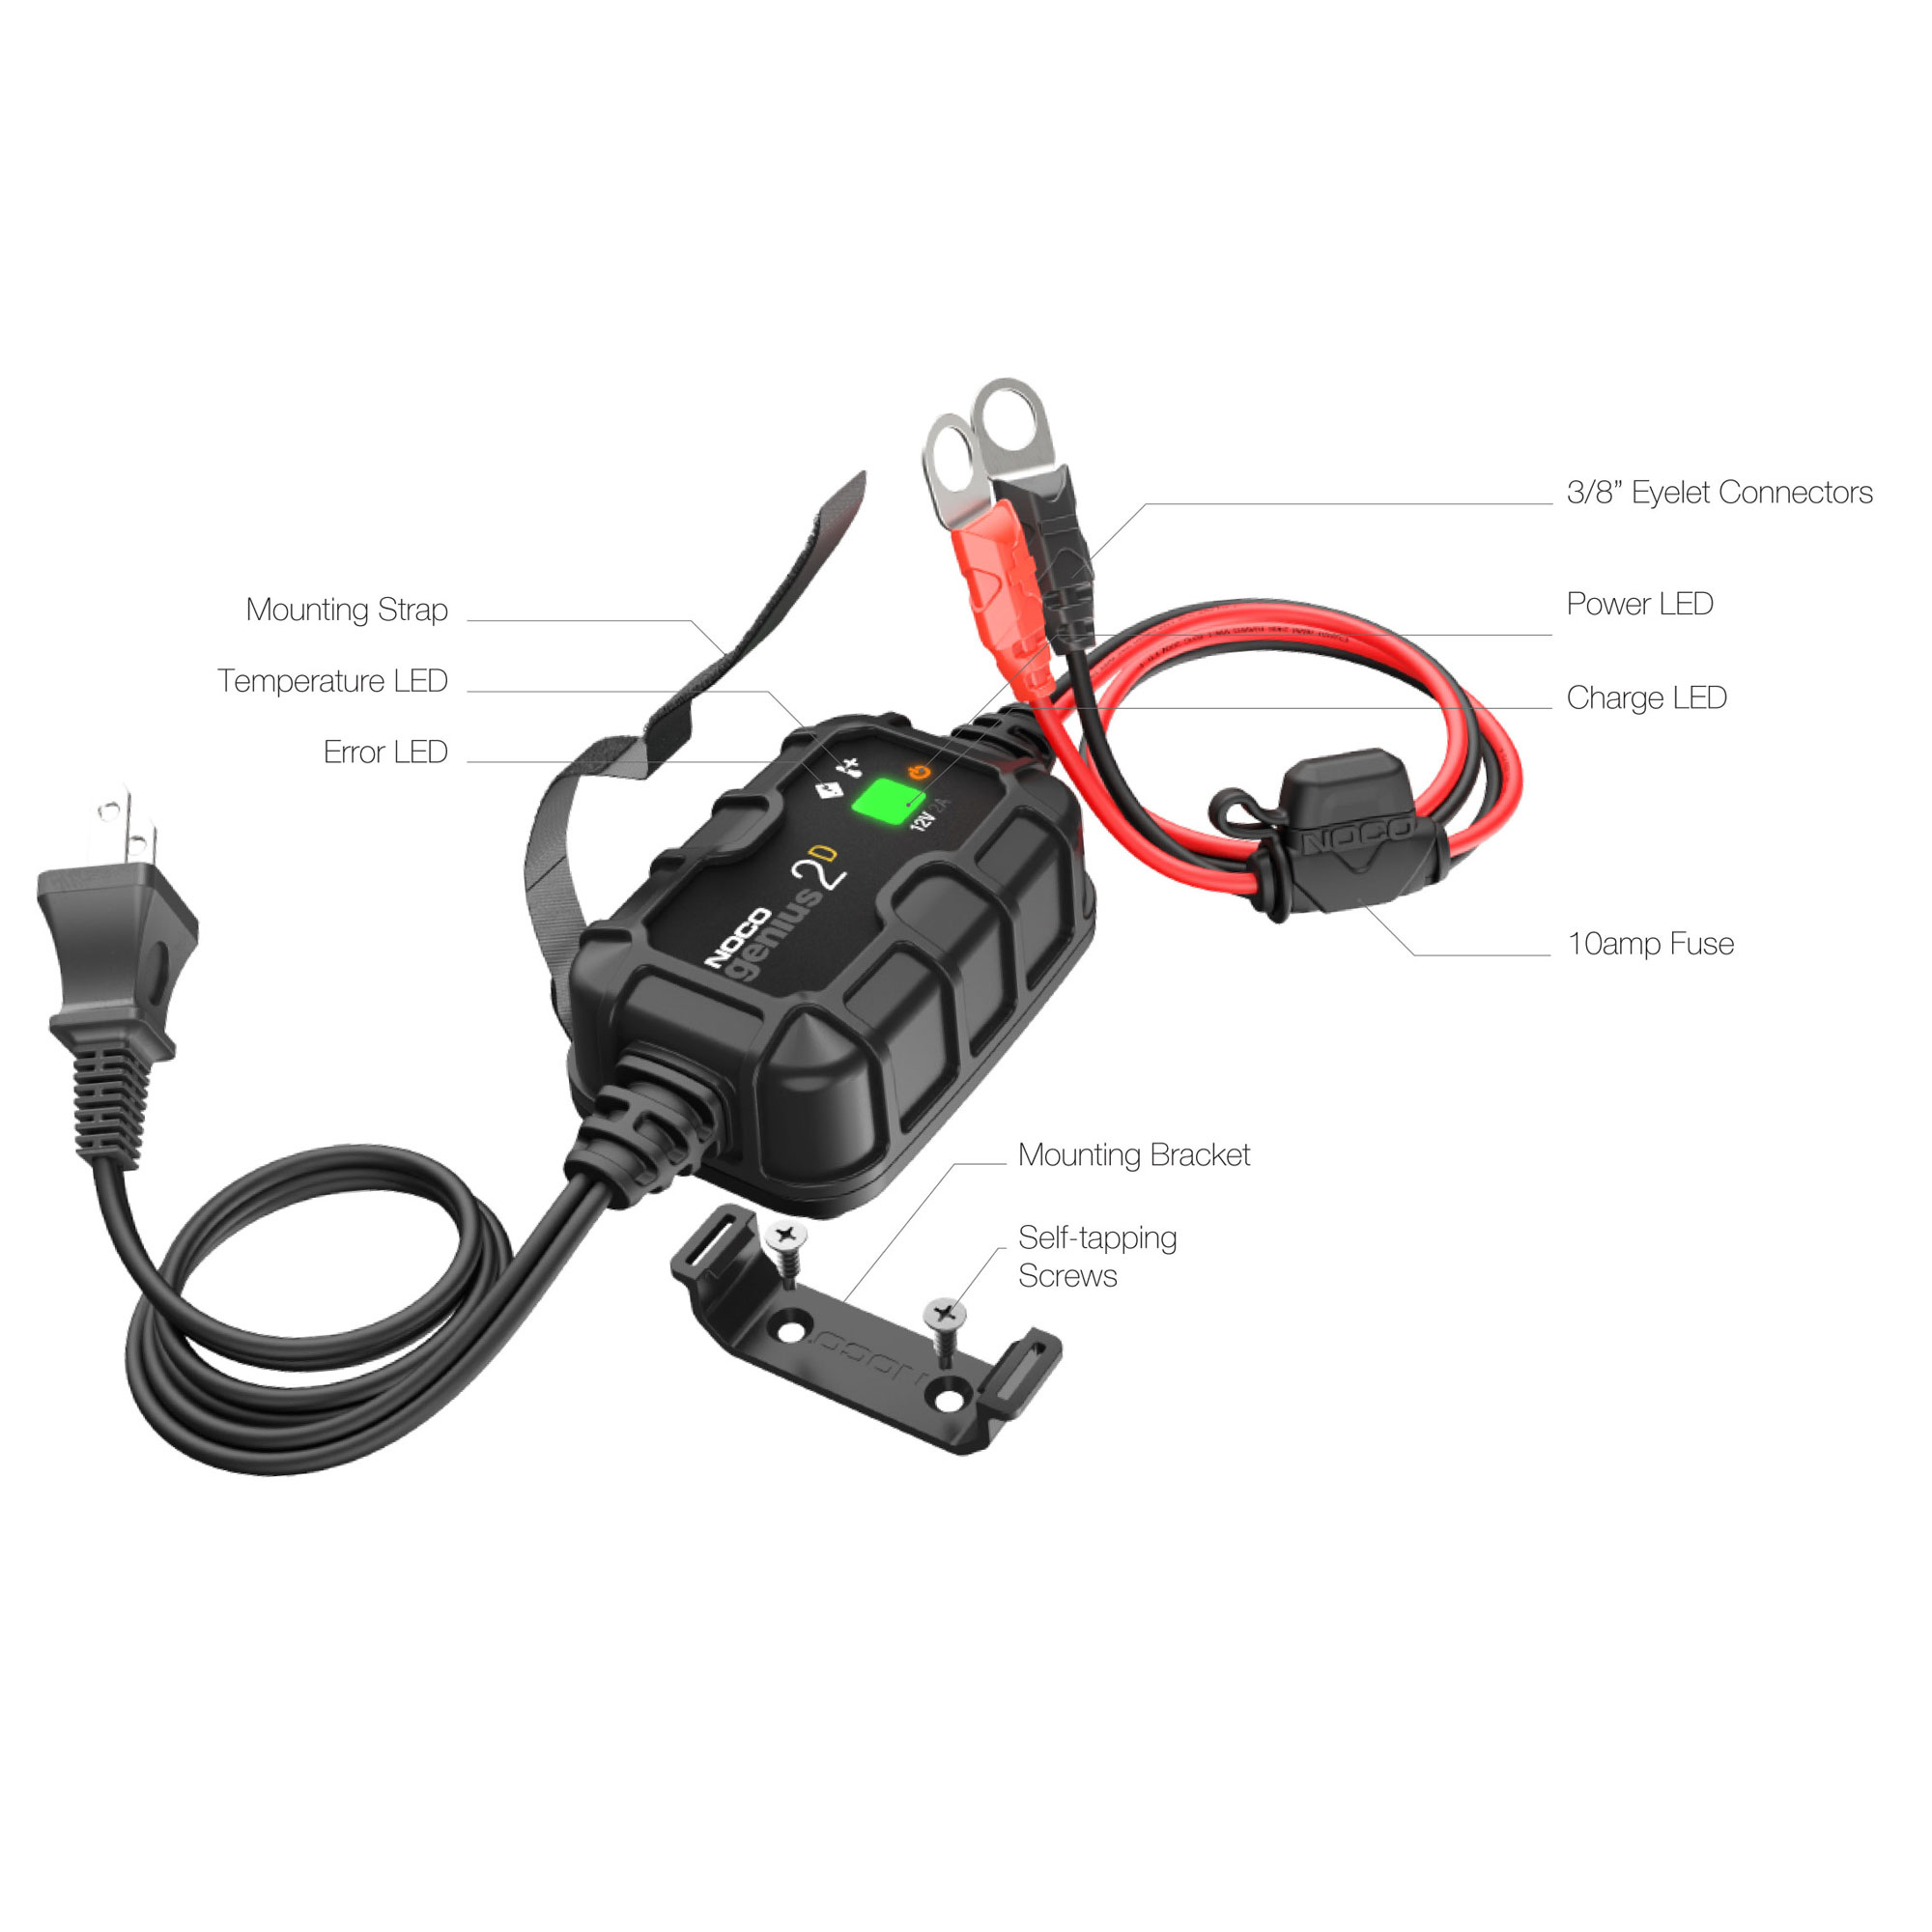 GENIUS2D   AUTOMATIC CHARGER MAINTAINER 12V 2A LEAD ACID